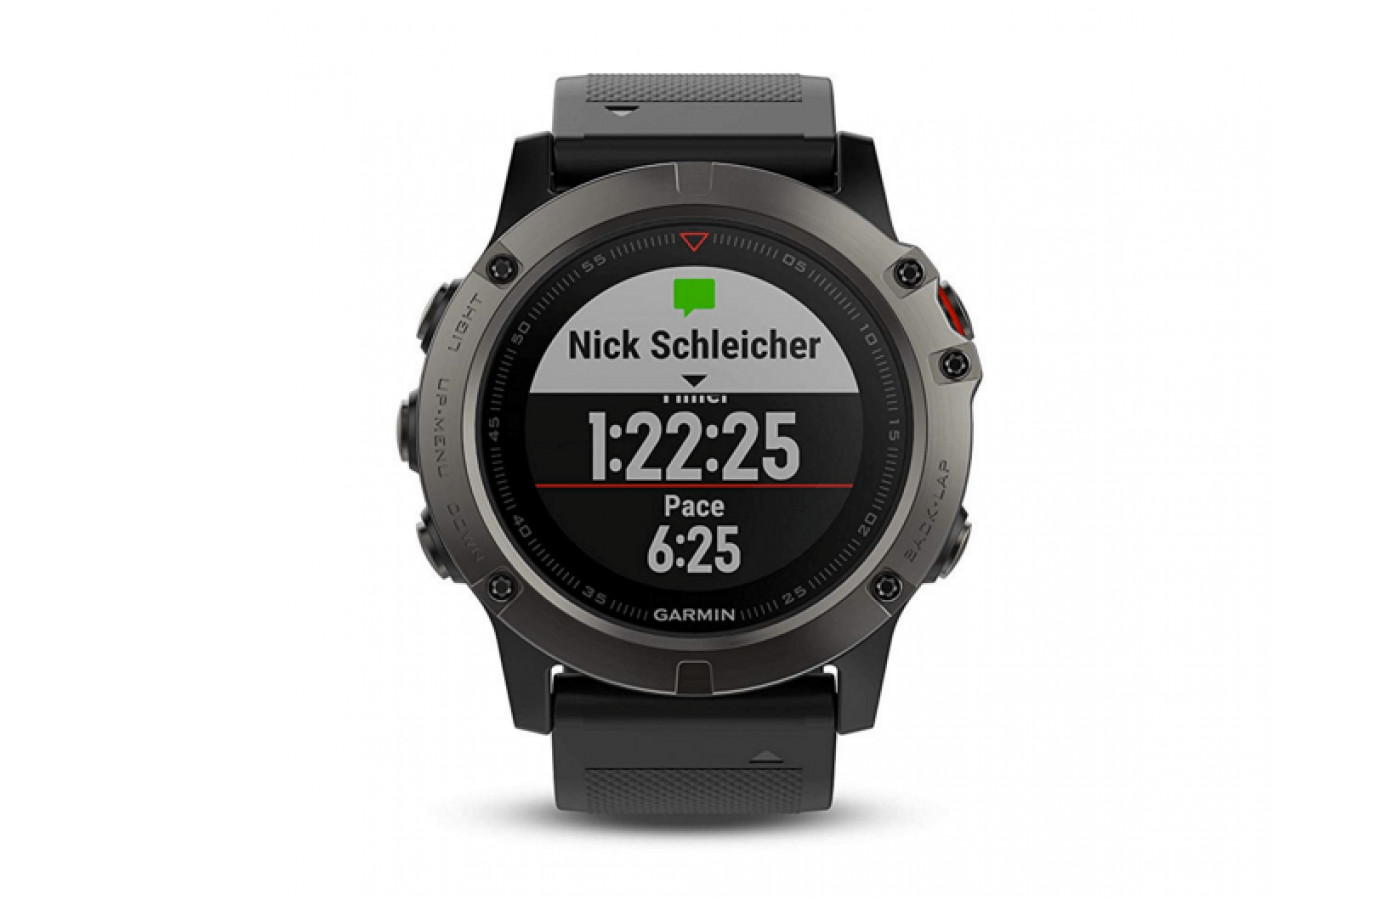 The Fenix 5X's GPS includes full-color mapping